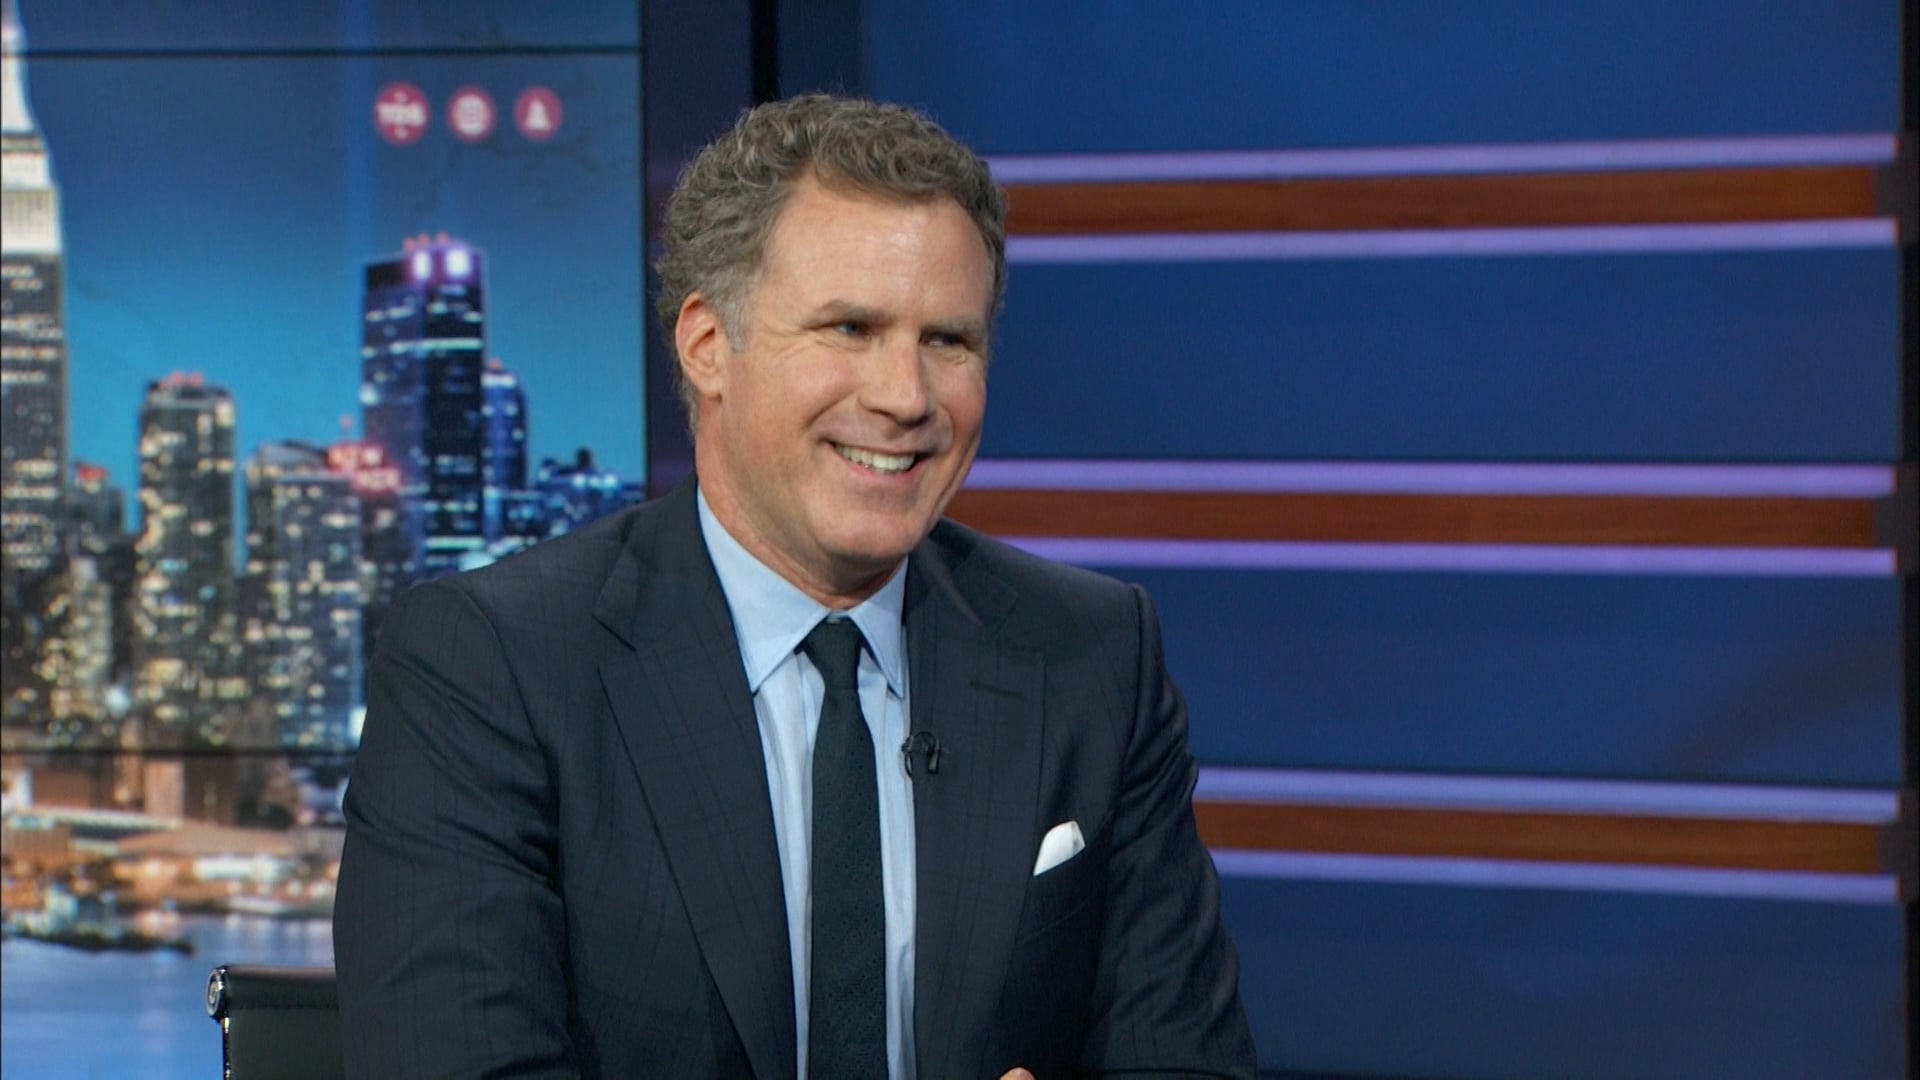 The Daily Show with Trevor Noah Season 21 :Episode 39  Will Ferrell